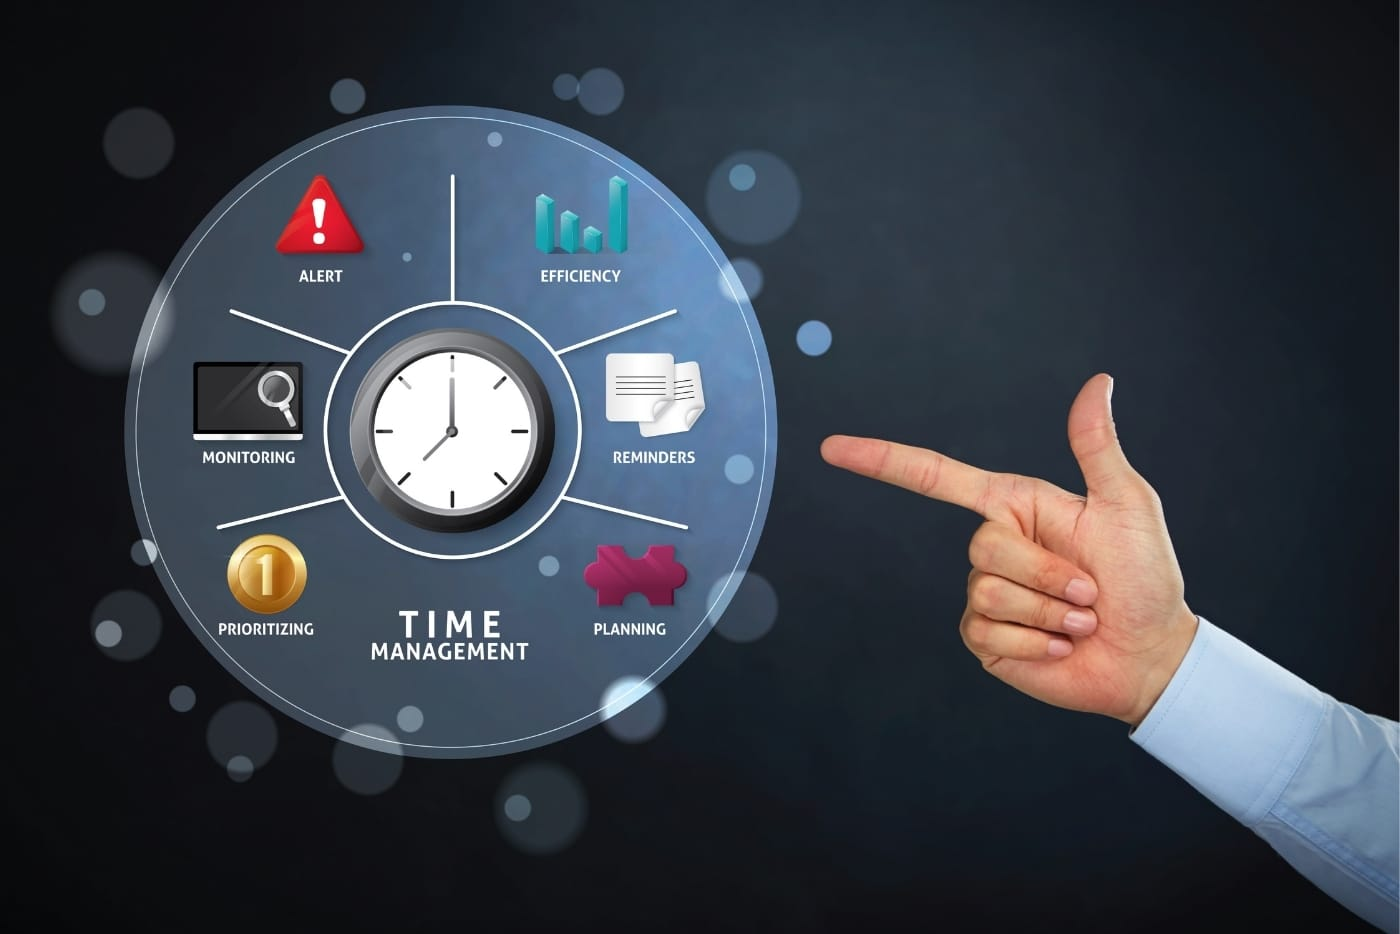 3 Uses of a Business Process Management Software